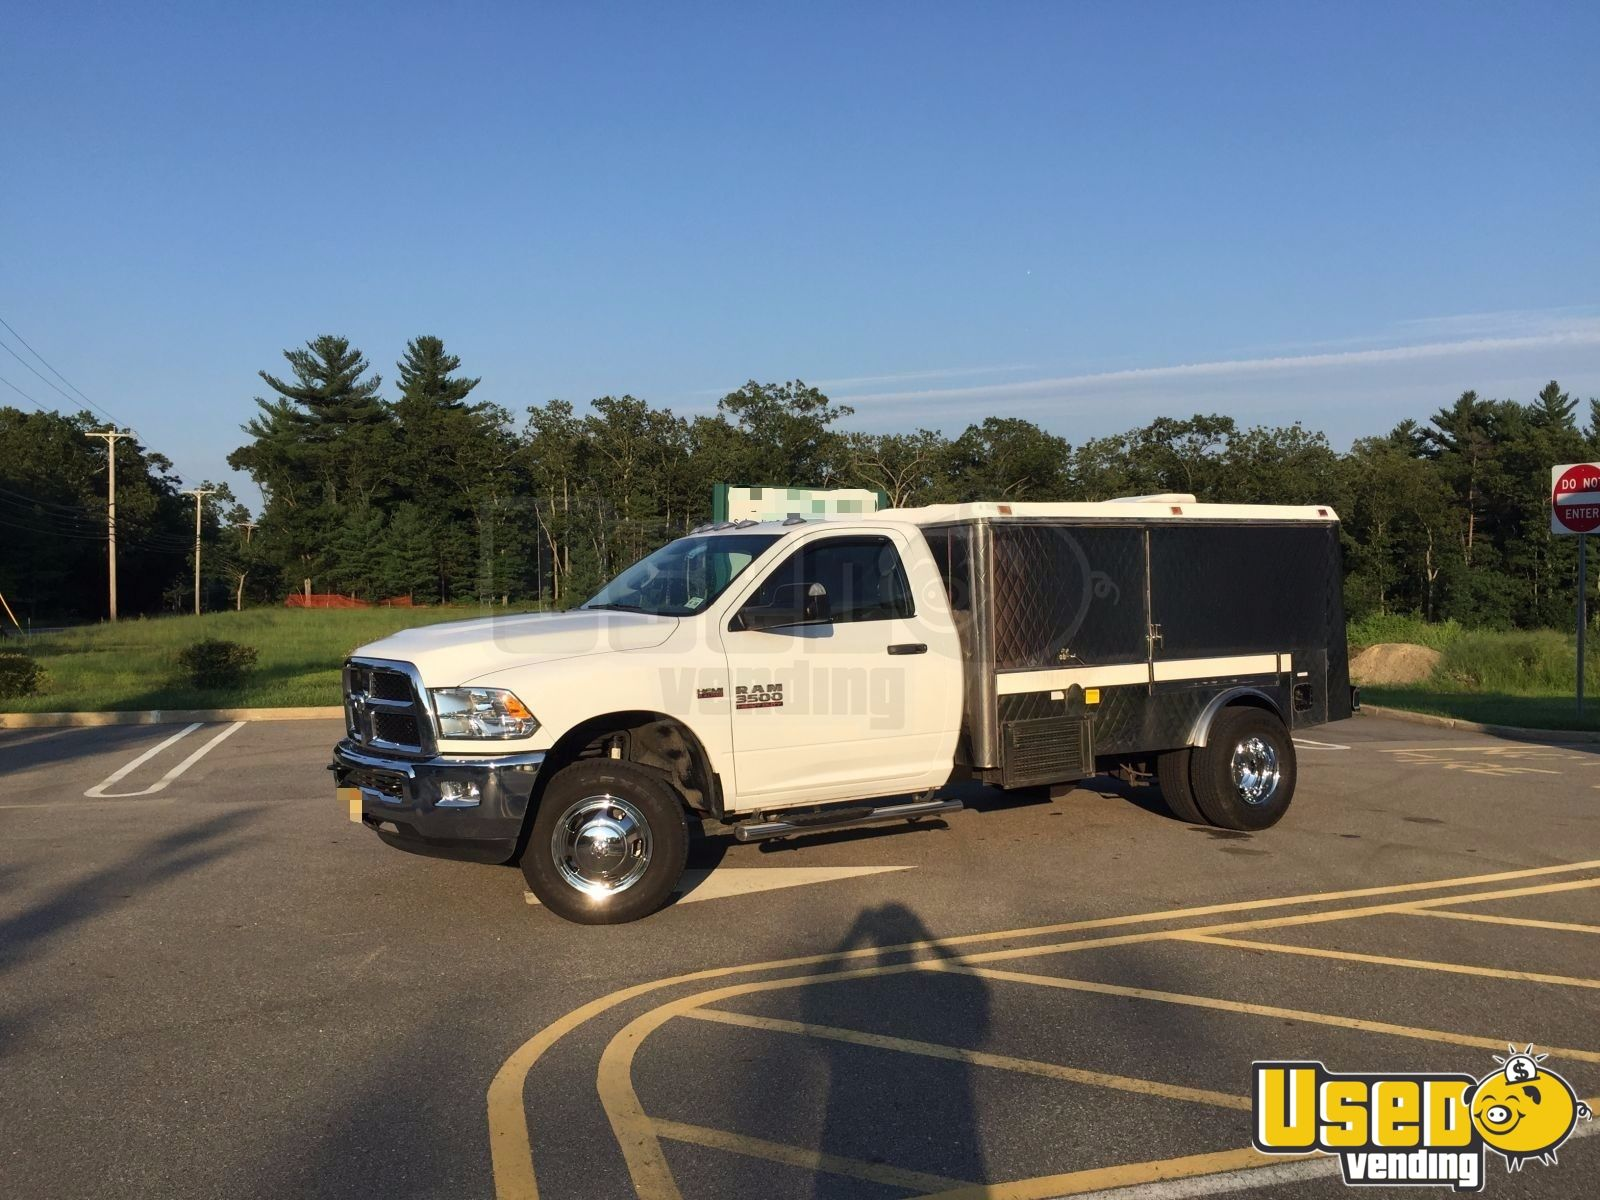 2017 Dodge Ram 3500 Dually Lunch Serving Food Truck Air Conditioning New Jersey Gas Engine for Sale - 2